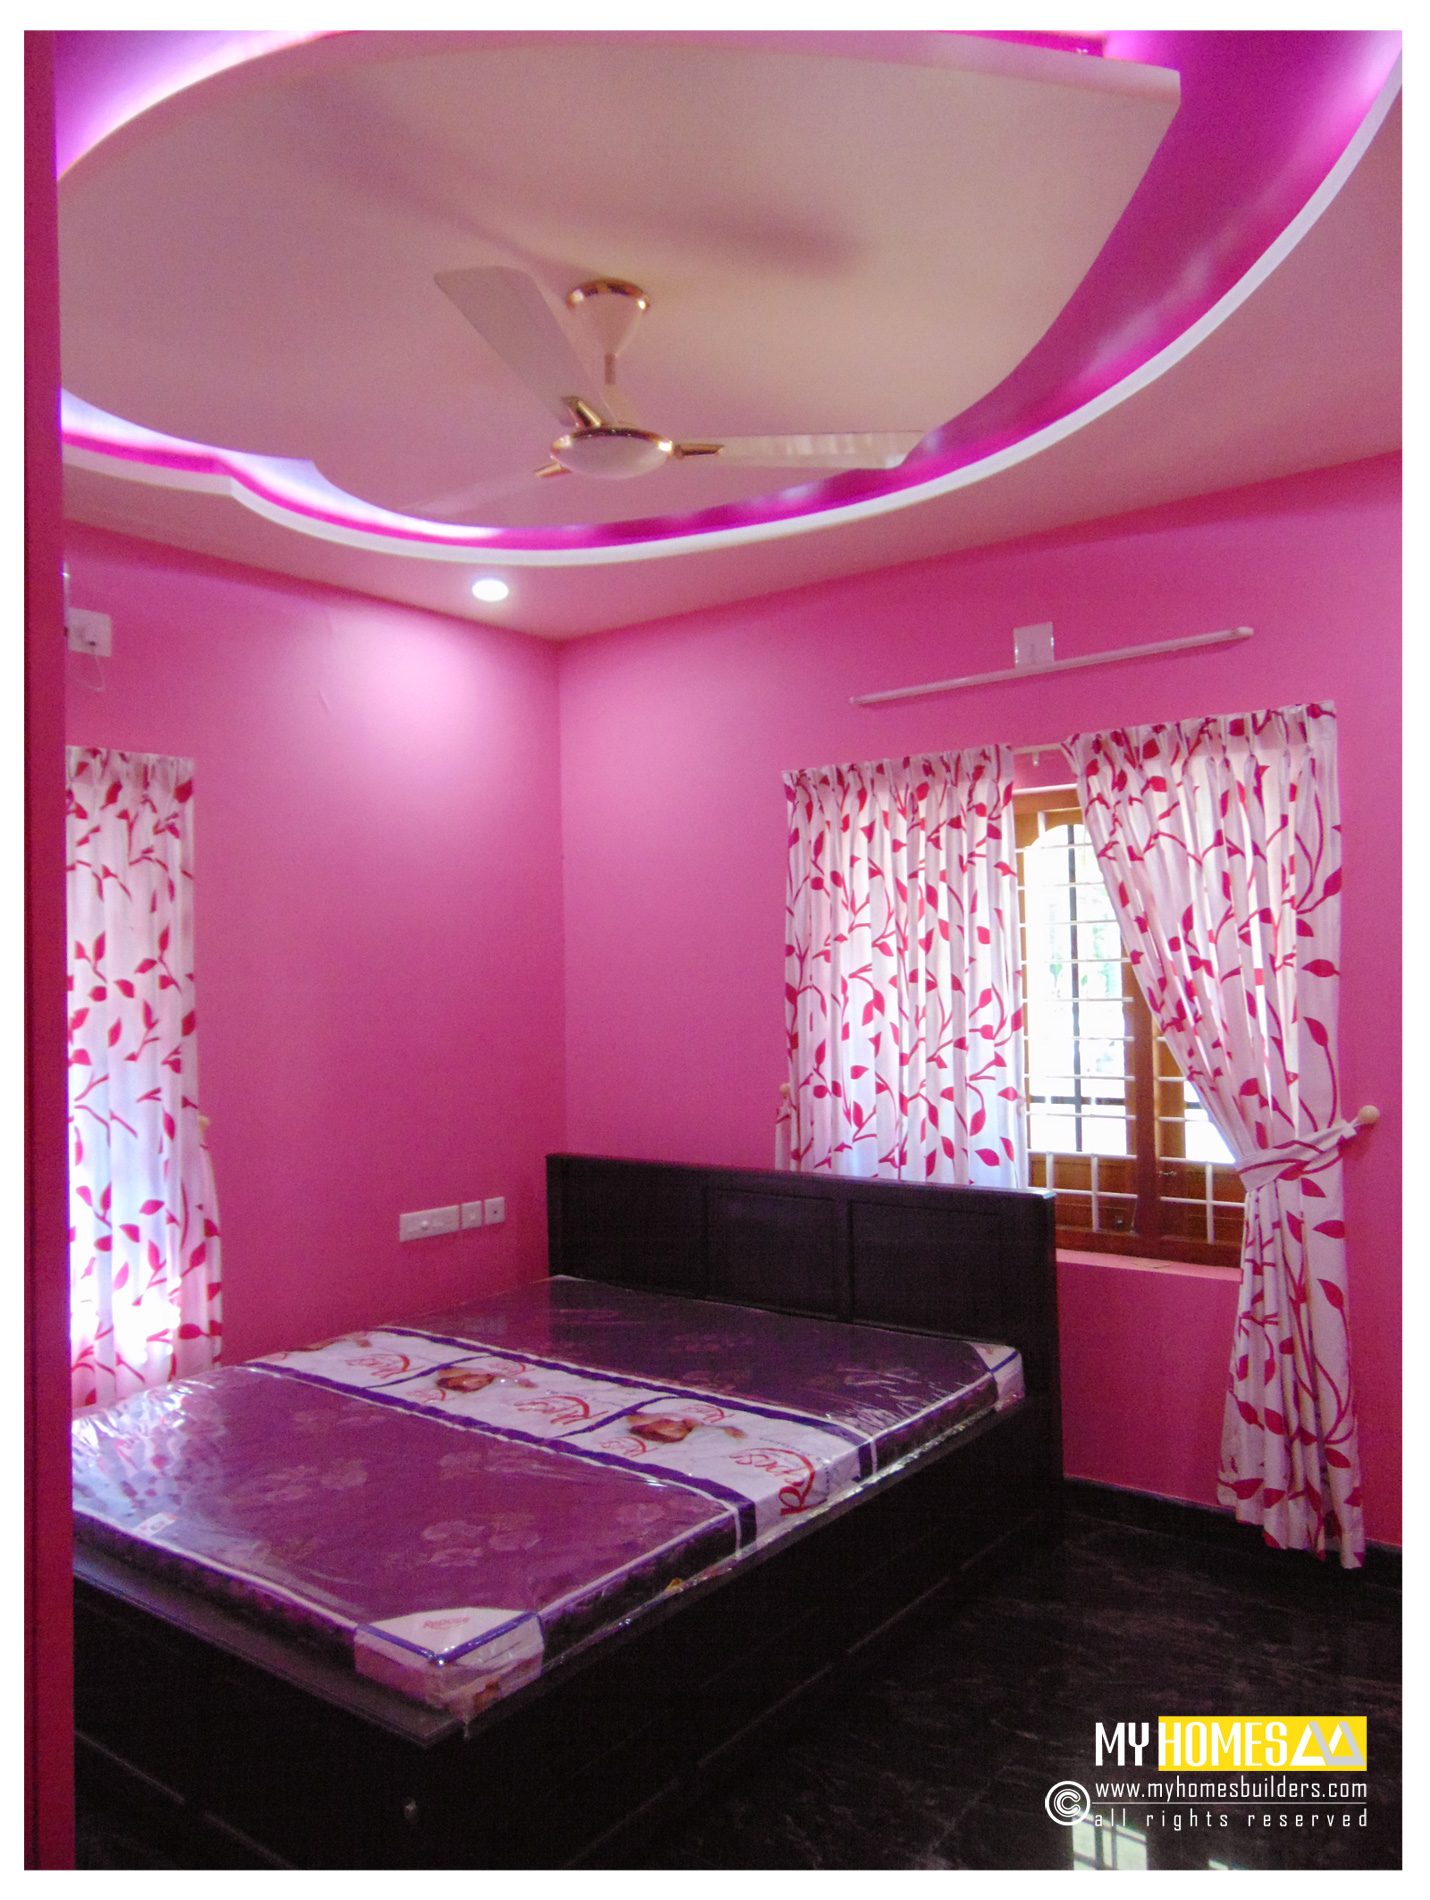 Simple style kerala bedroom designs ideas for home interior for Dining room ideas kerala